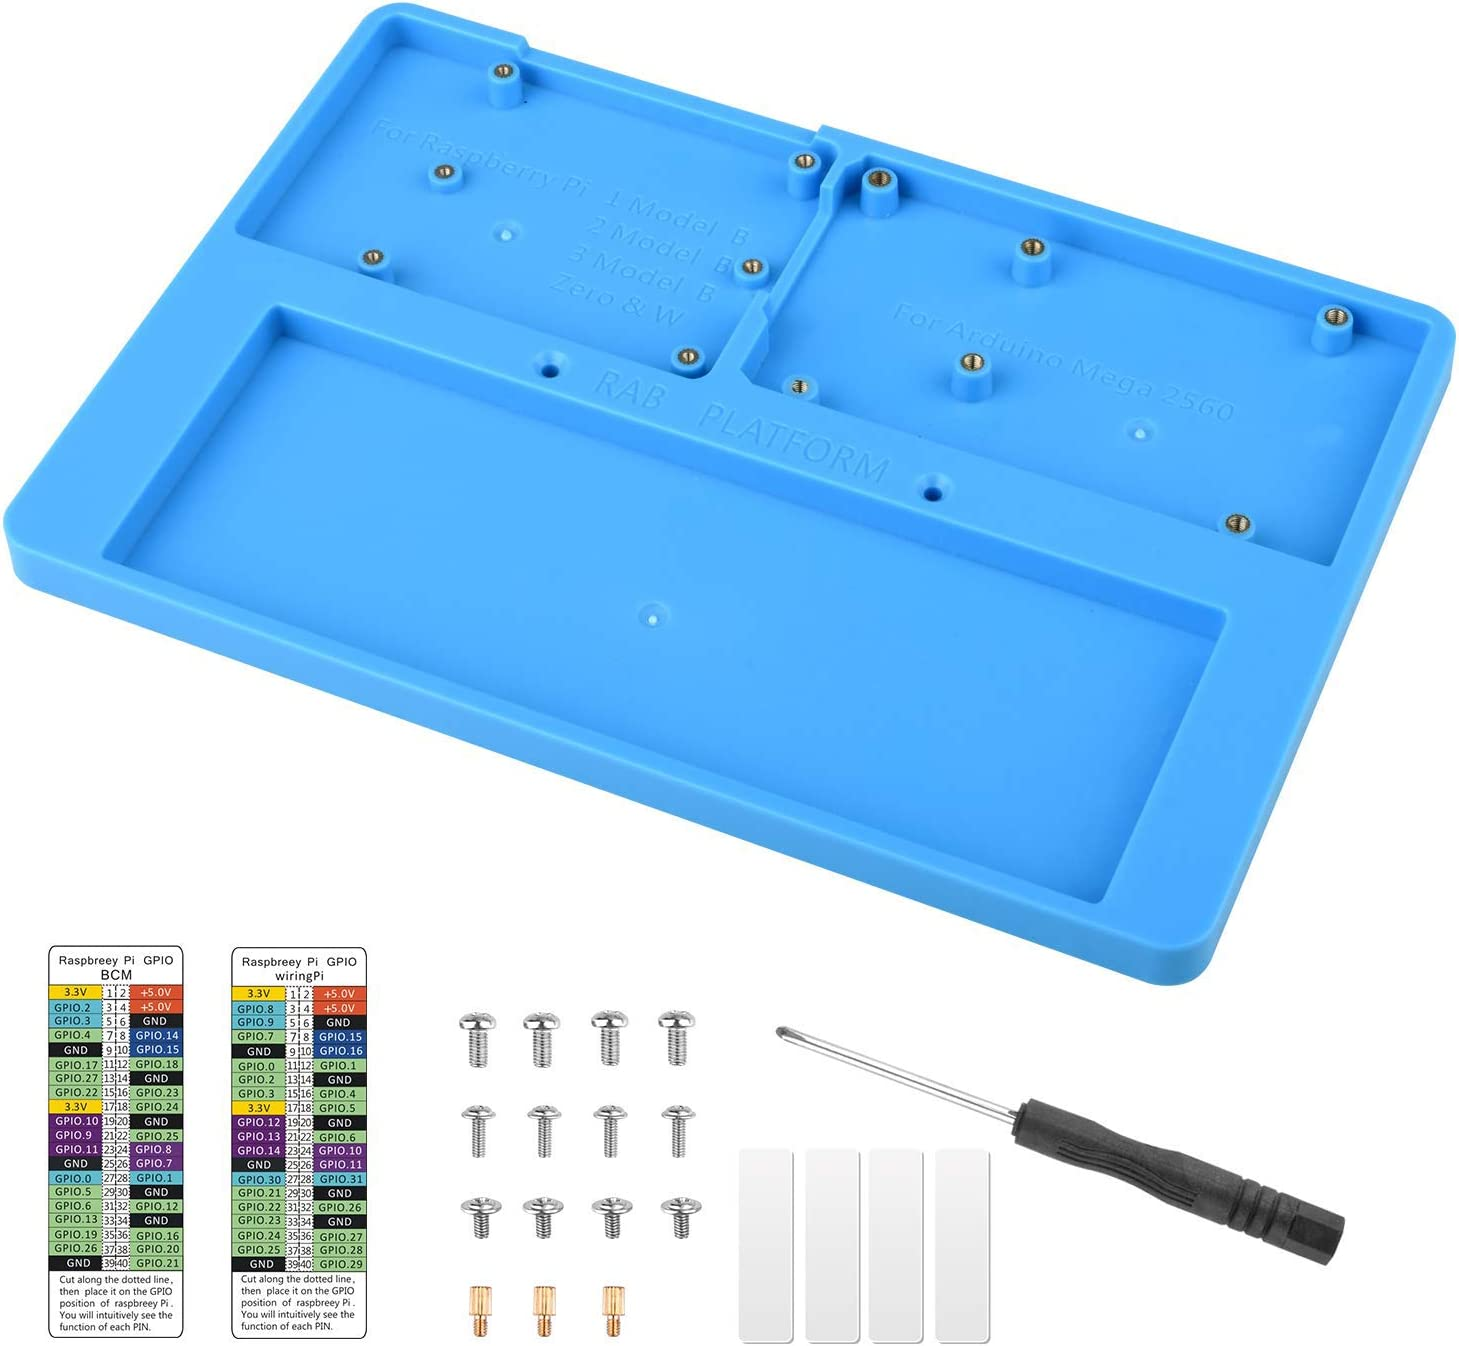 UNIROI 7 in 1 RAB Holder Raspberry Pi Breadboard, Base Plate Case with IDE 328P Control Cord for Mega 2560, Raspberry Pi 3 Model B, 2 Model B,1 Model B+ RPI 4B Zero and 400 Points Breadboard